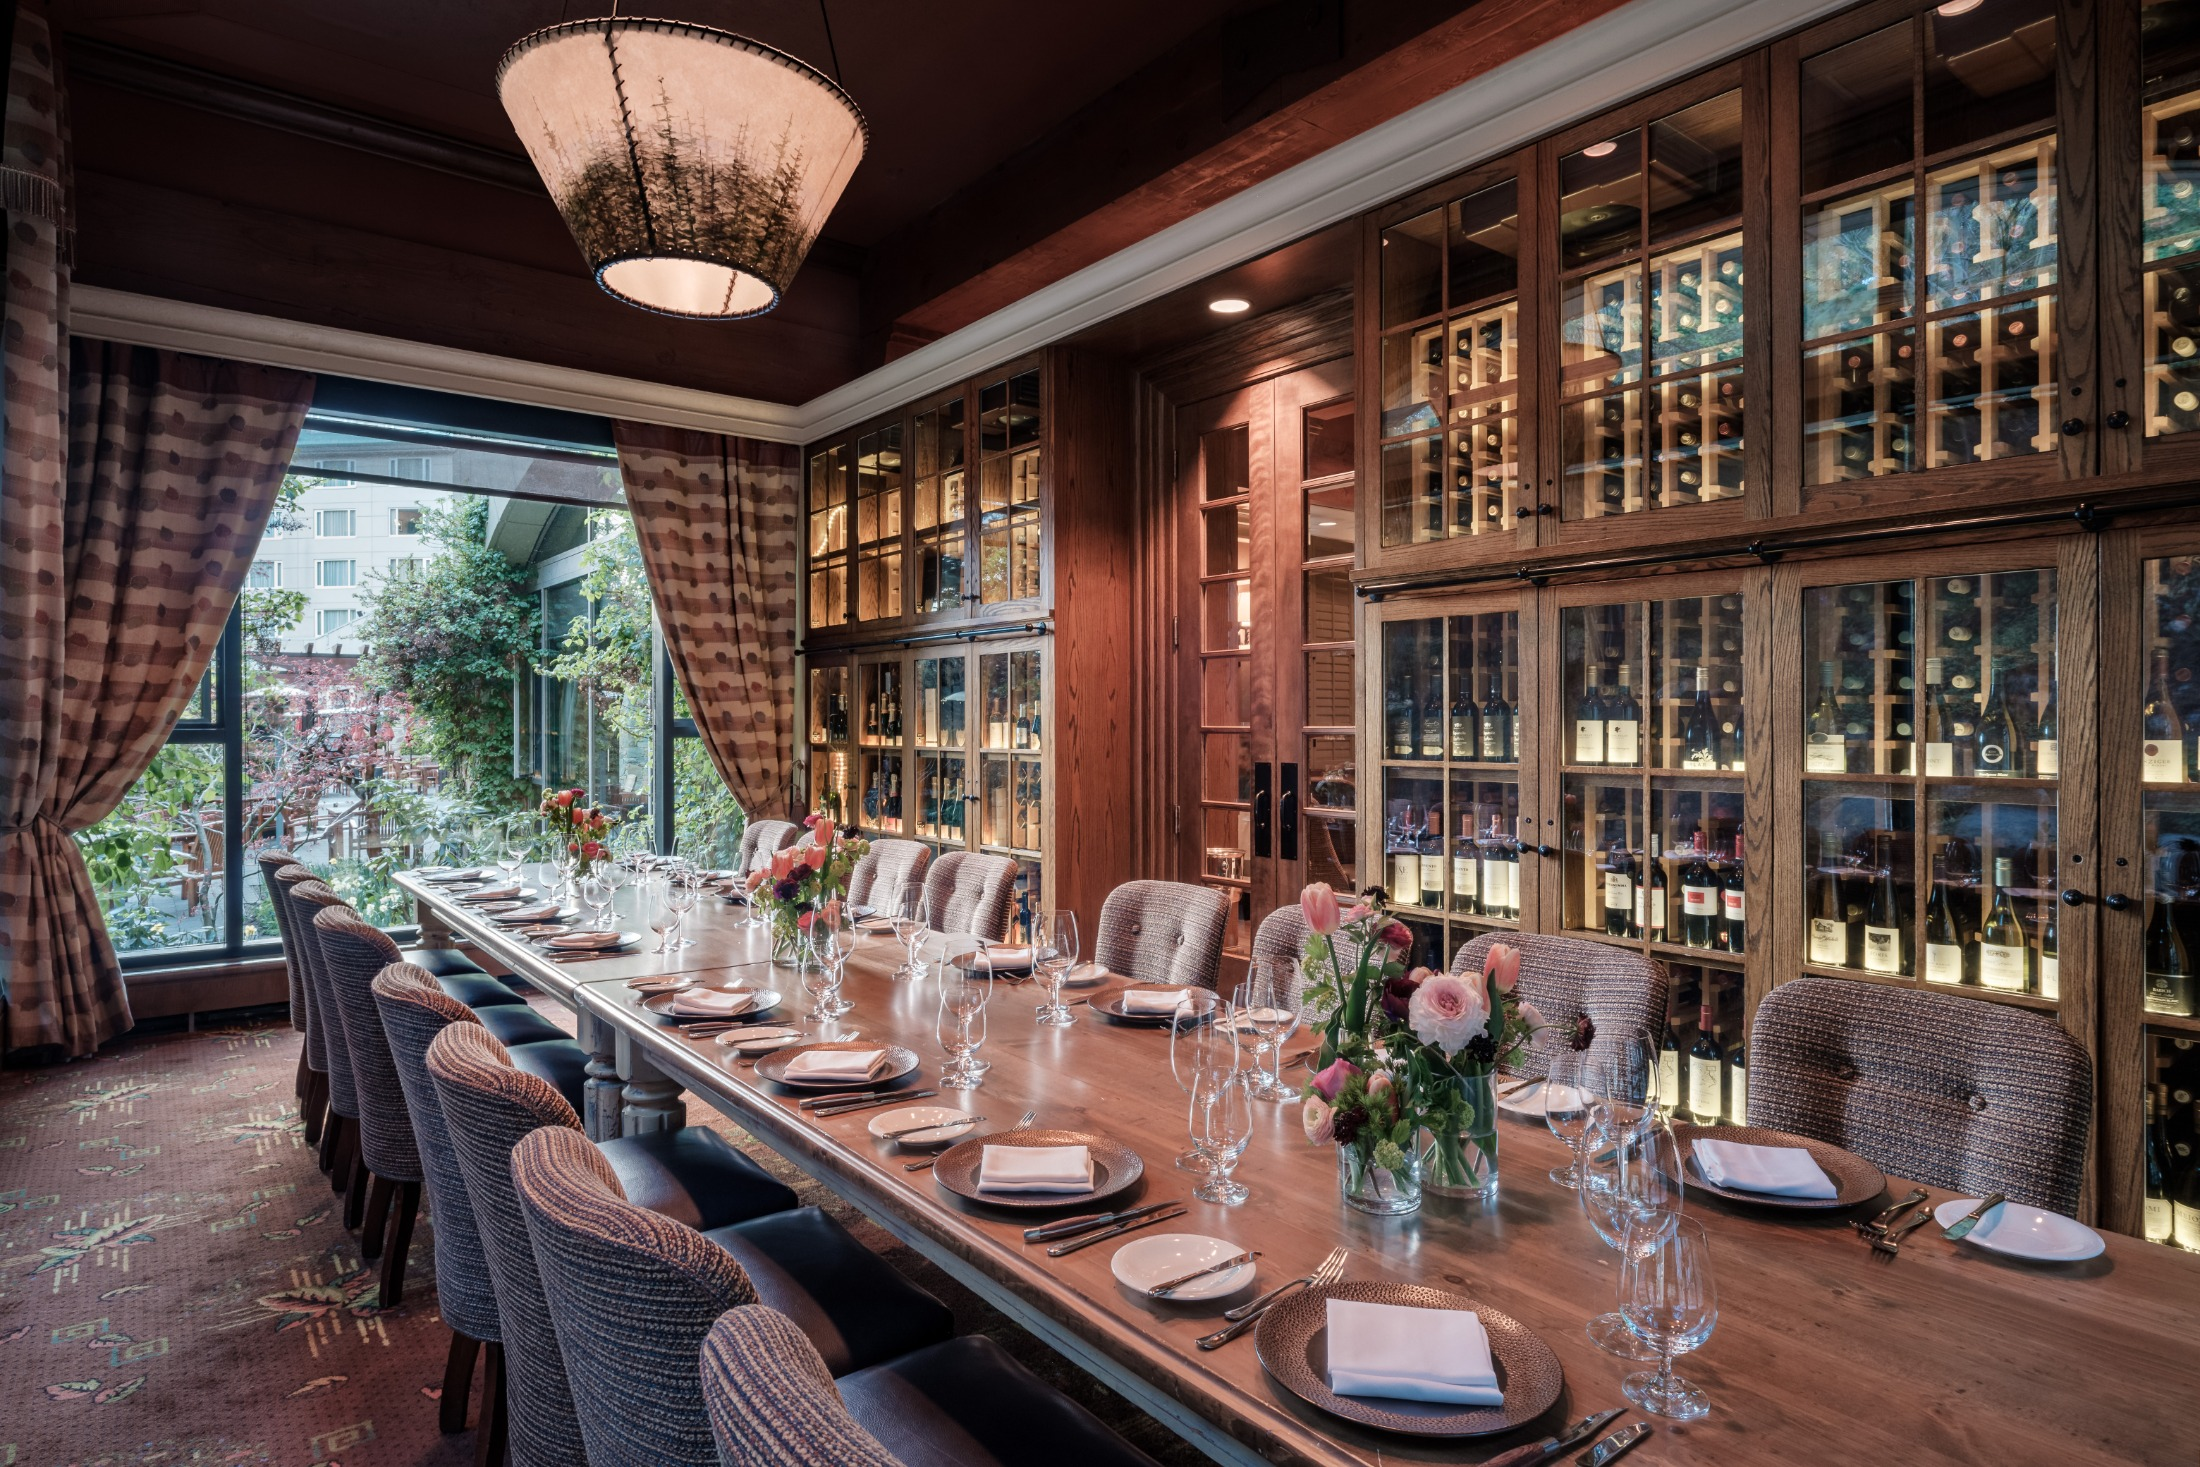 Fairmont Cheateau Whistler Private Dining Room